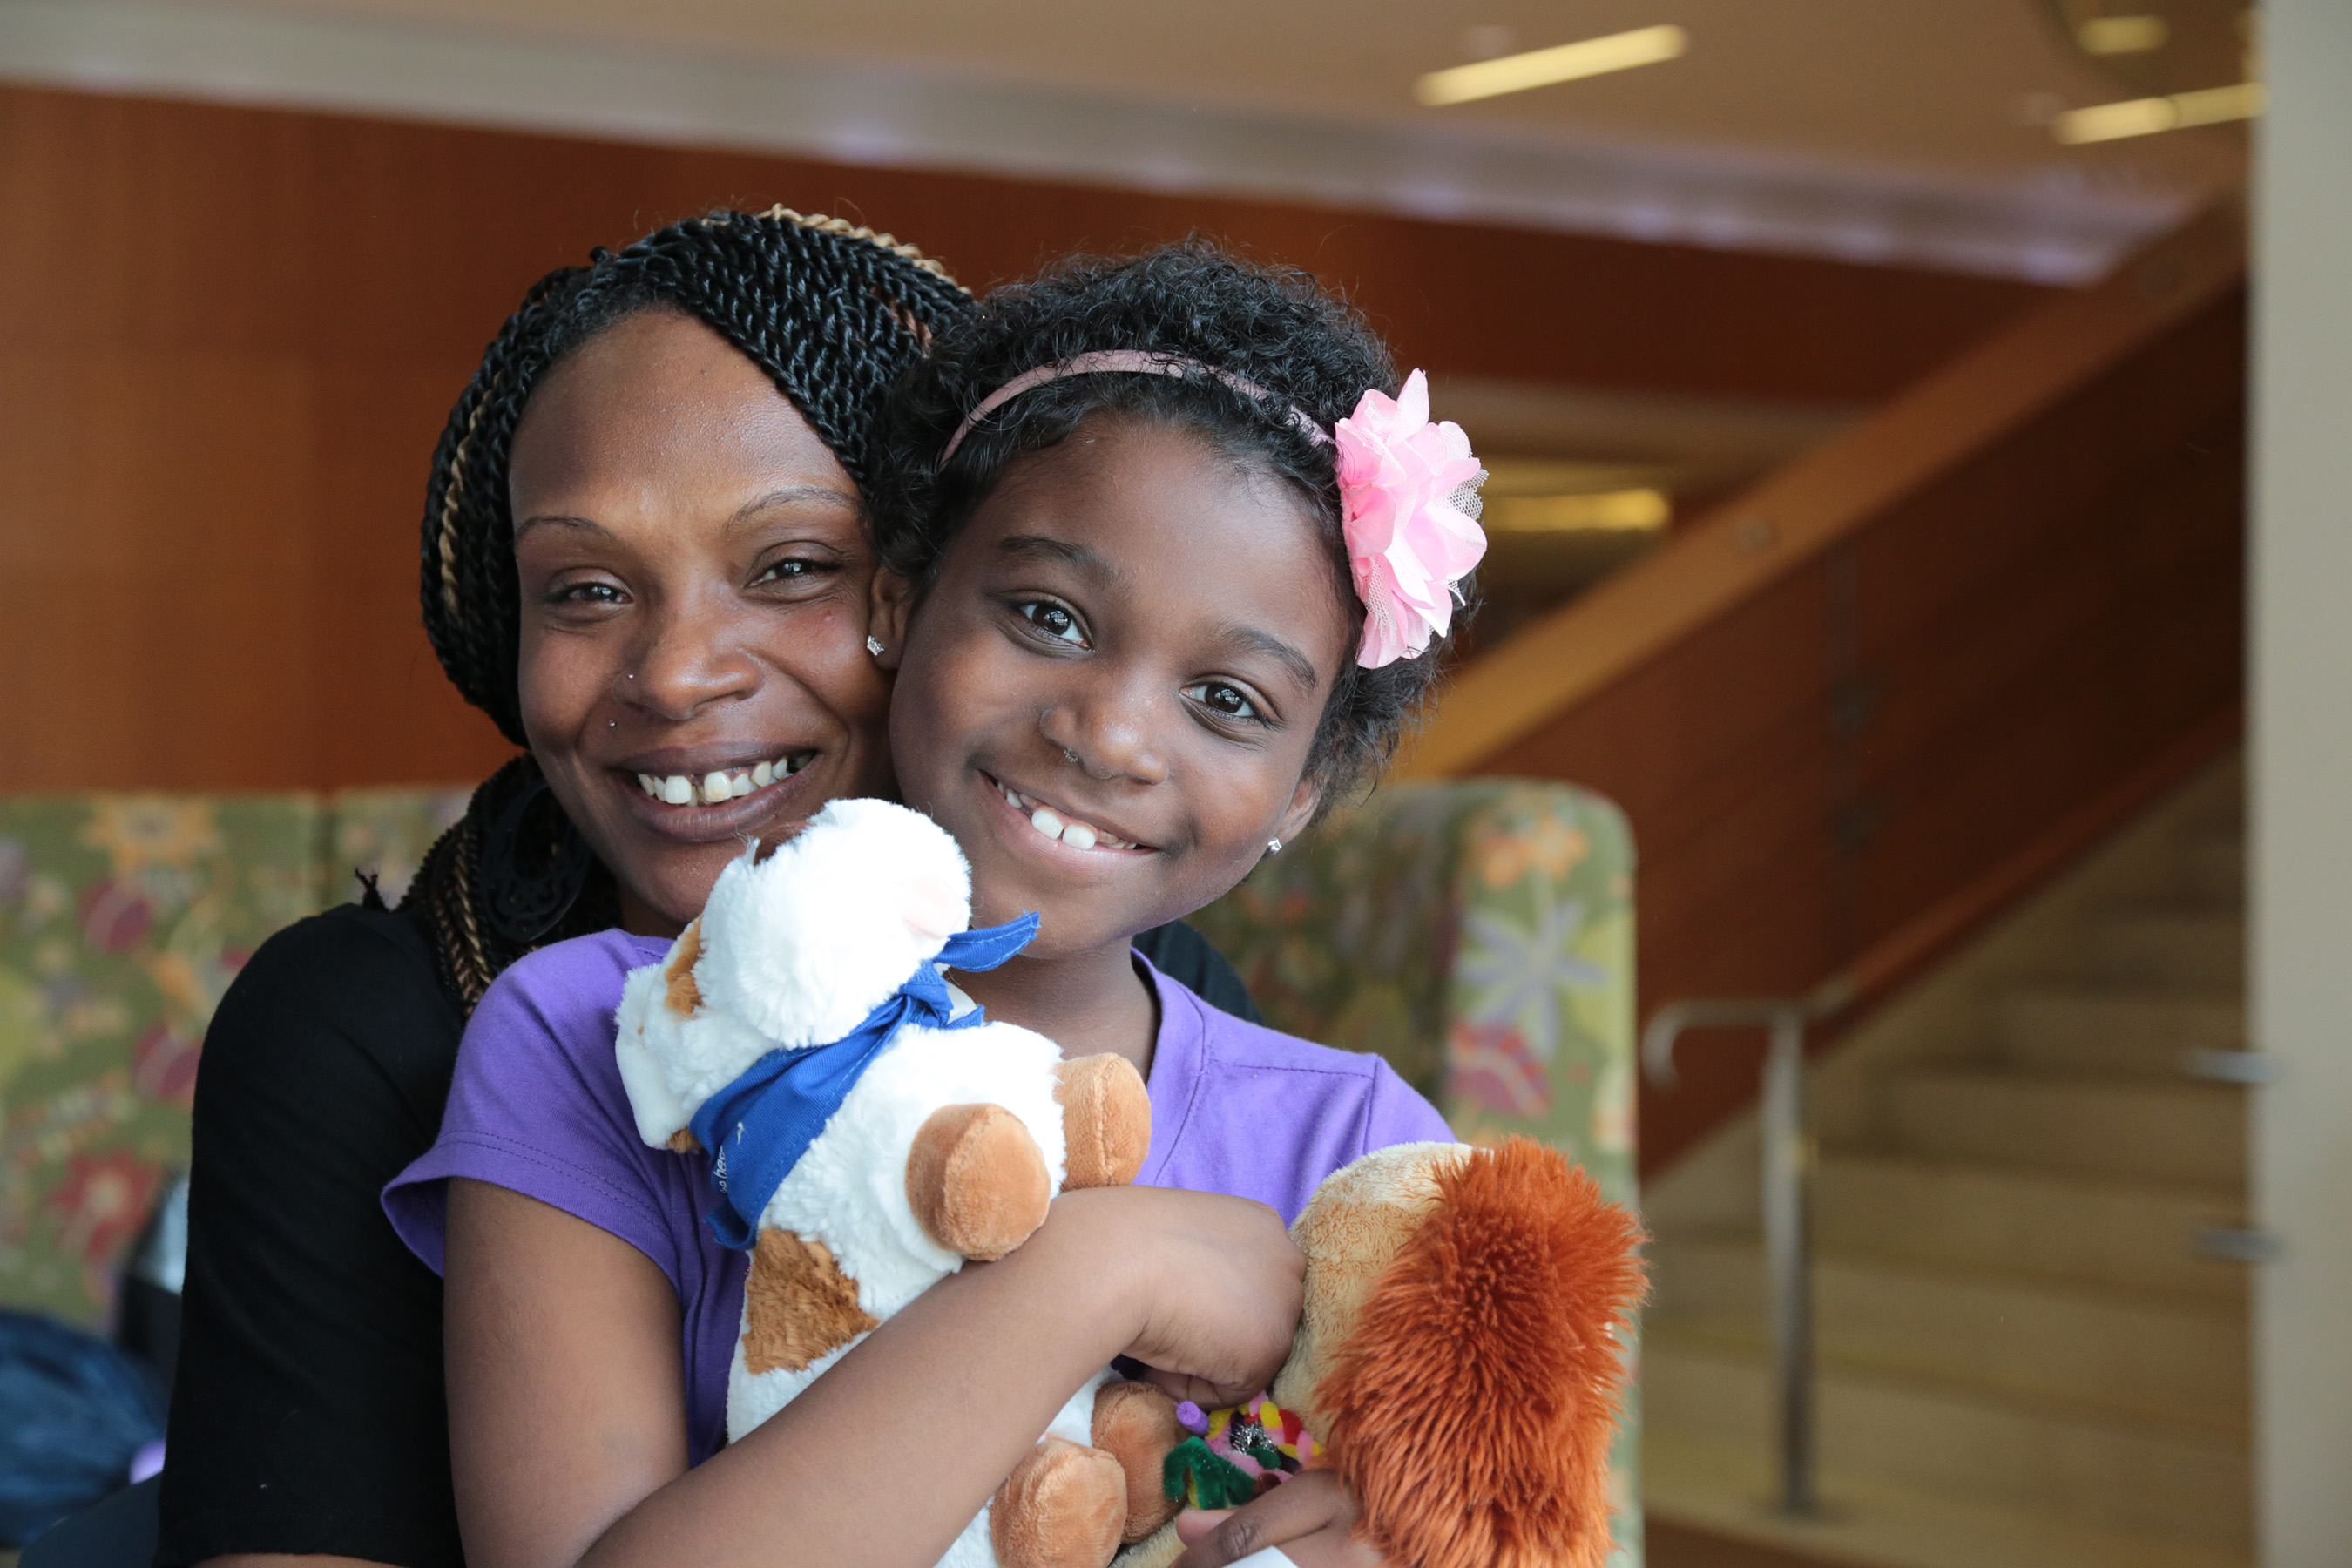 Fonta Taylor of Beloit, Wisconsin, is one of eight mothers that Northwestern Mutual, through its Foundation, will honor this Mother's Day.